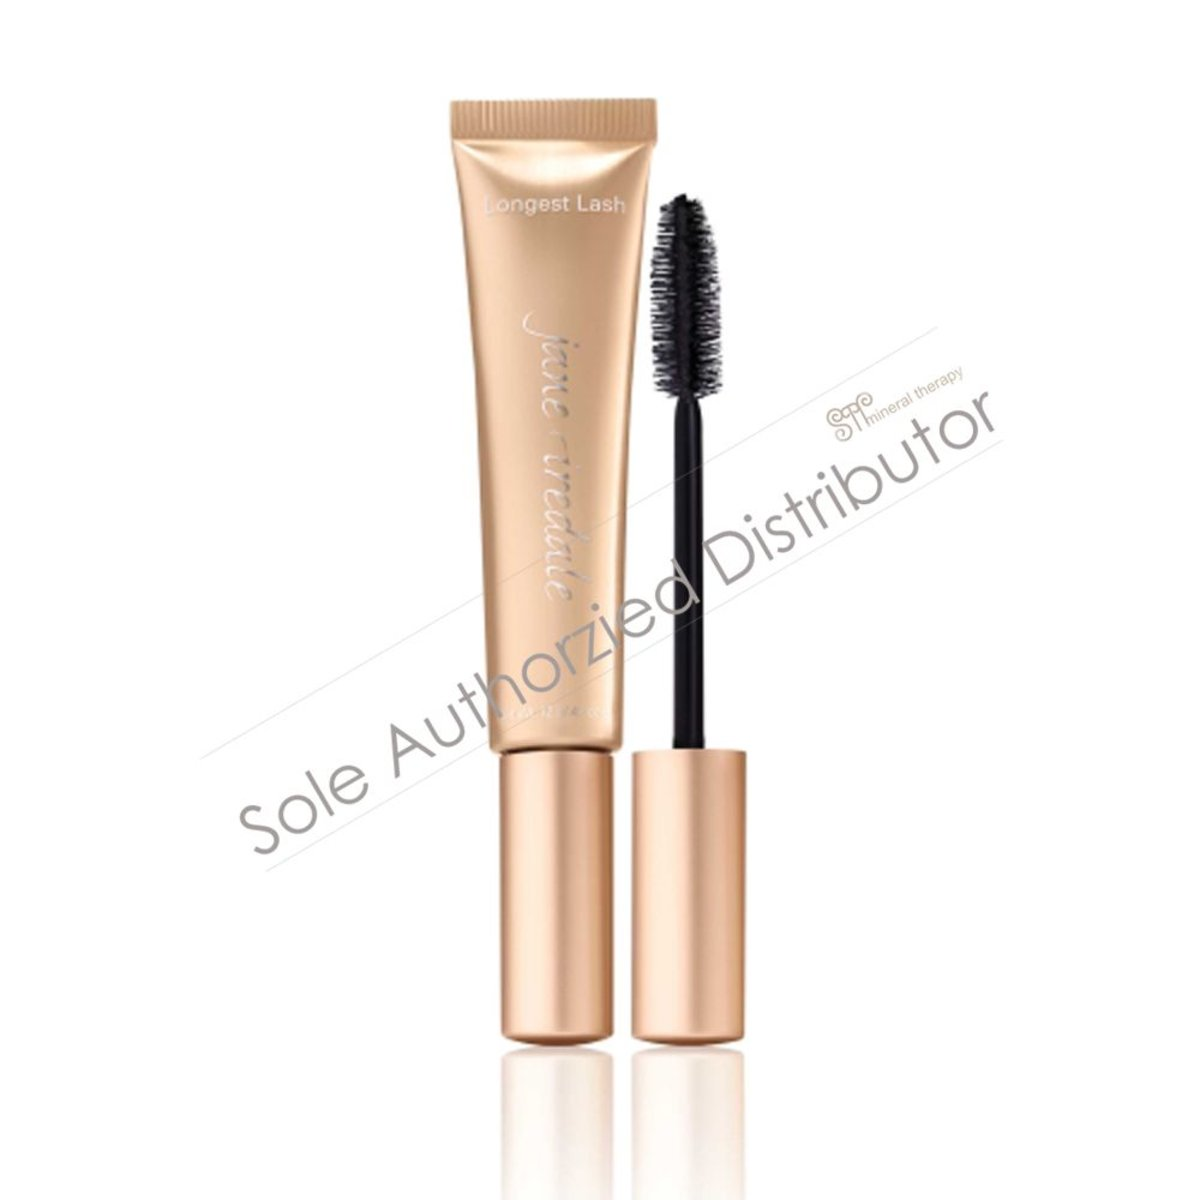 Longest Lash Thickening & Lengthening Mascara #Black Ice